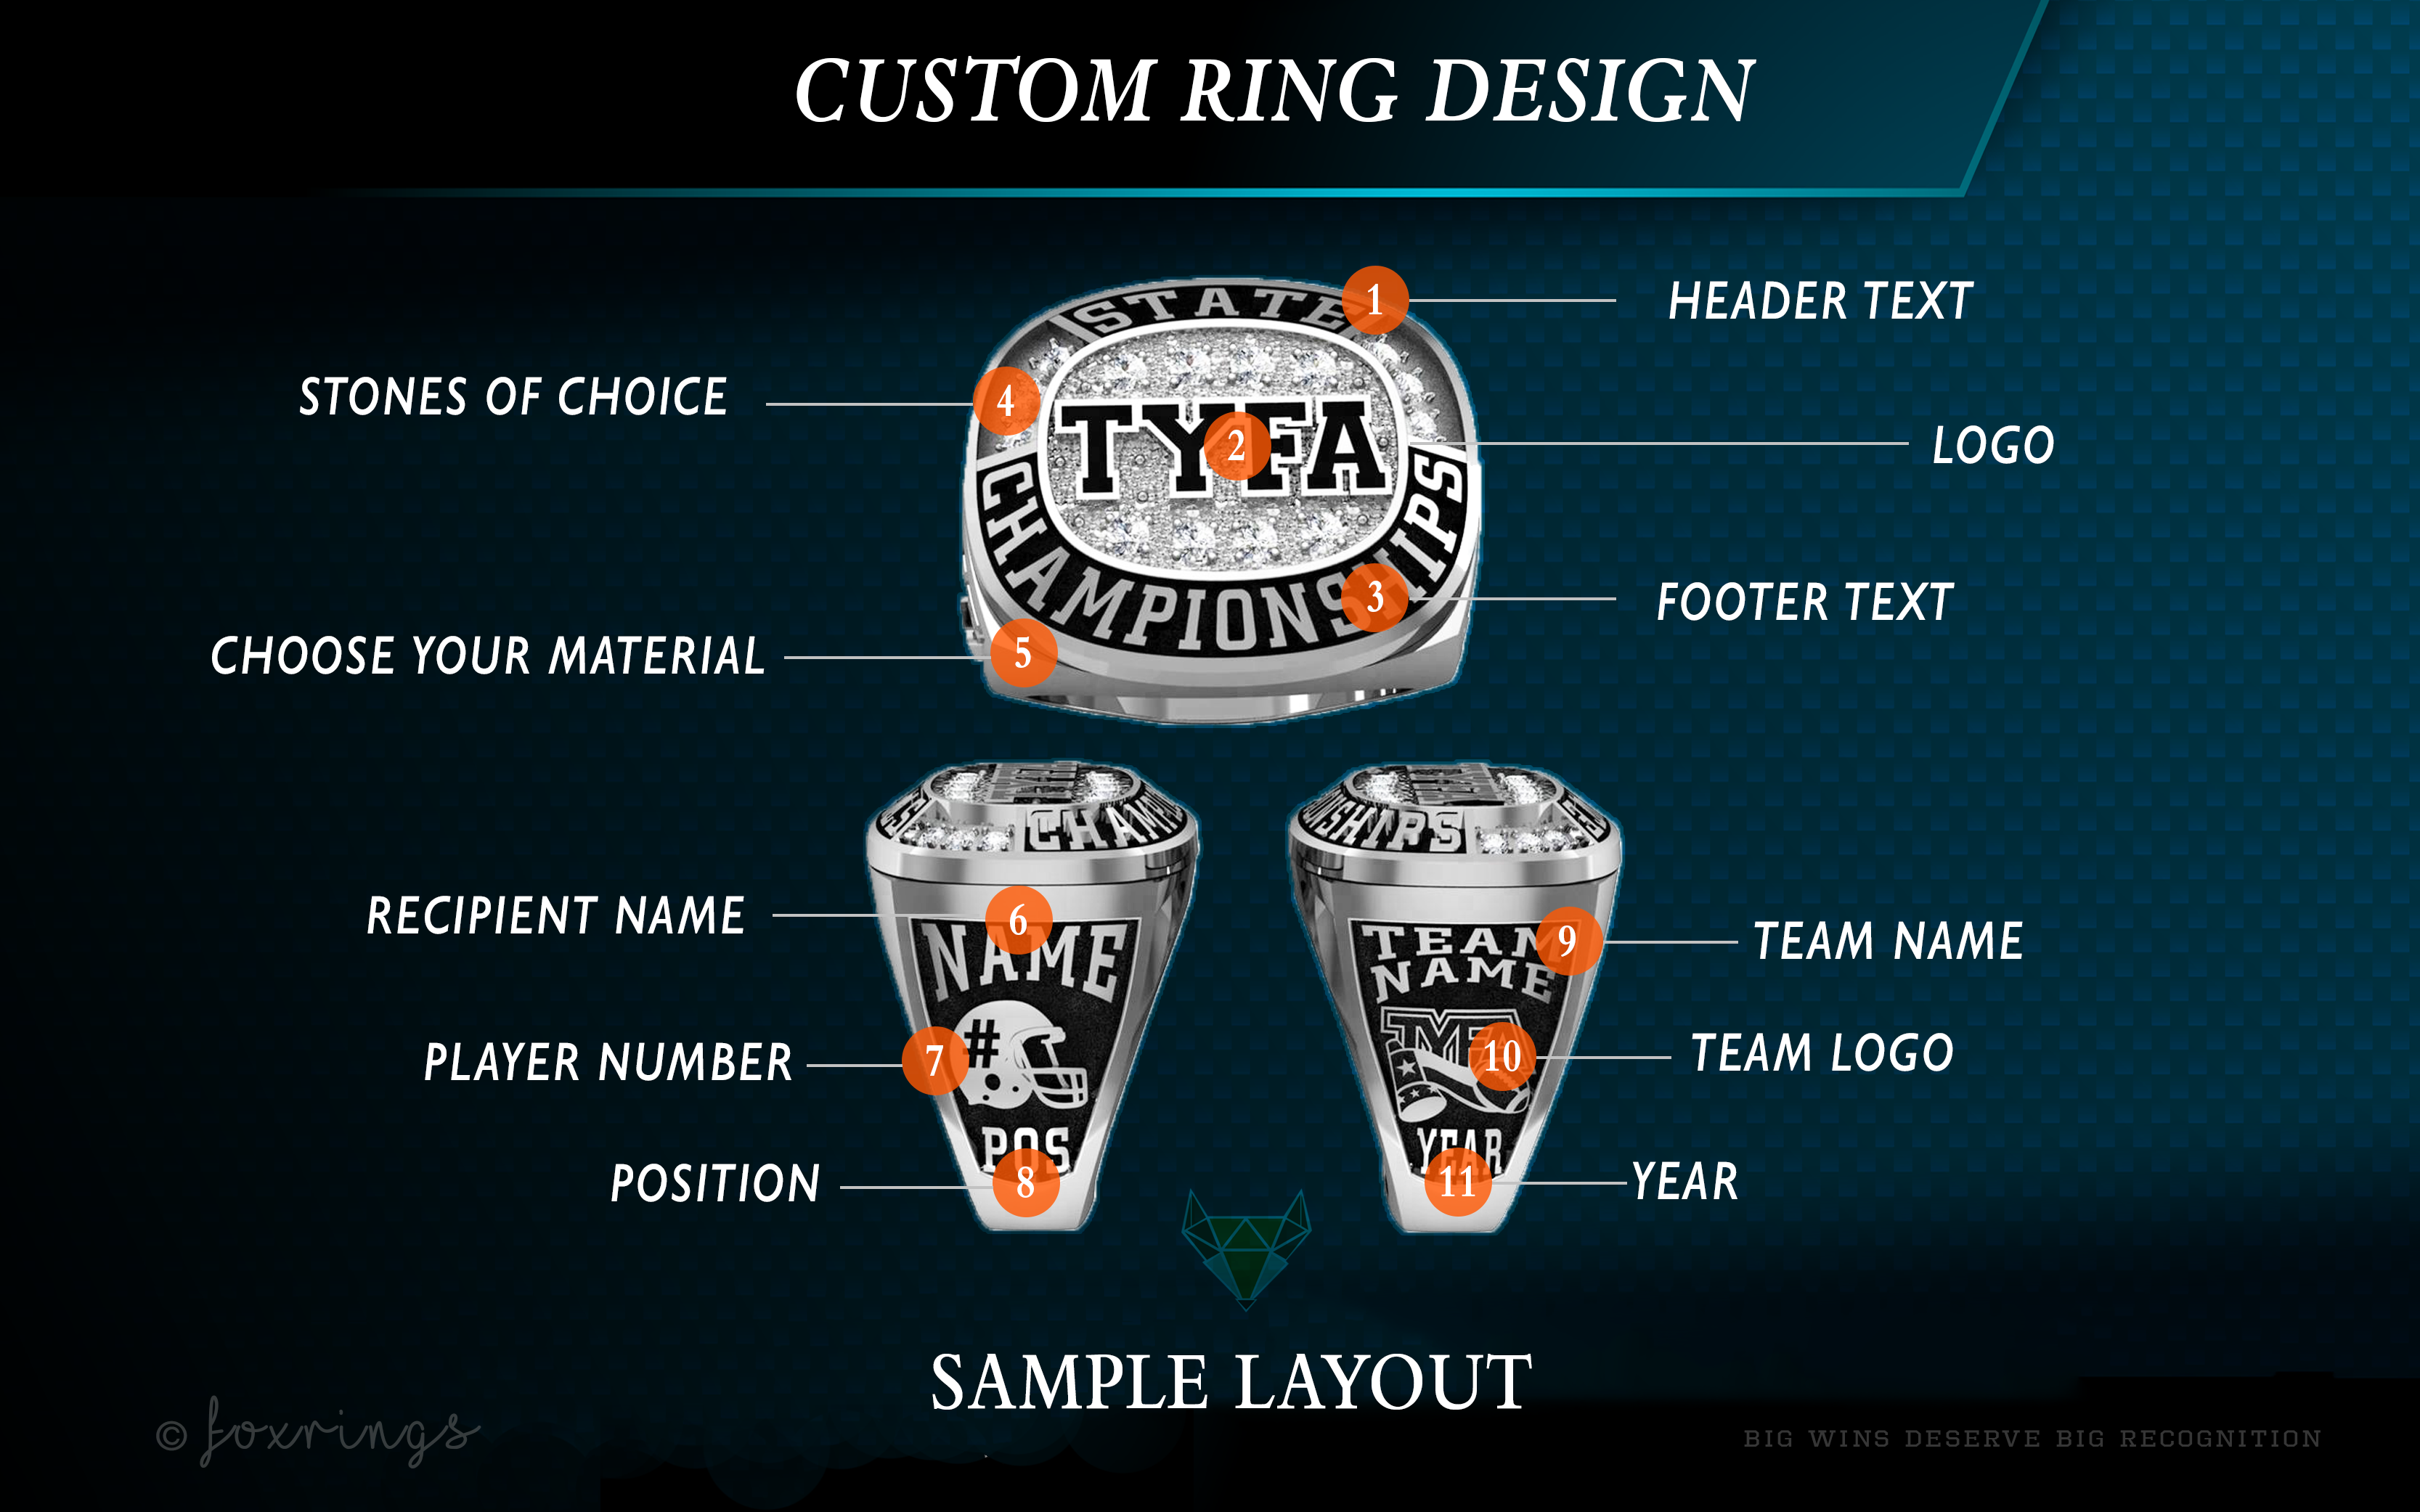 How to Design a Custom Championship Ring. A sample layout includes personalized ring sides, with player name, position, player number and team logo